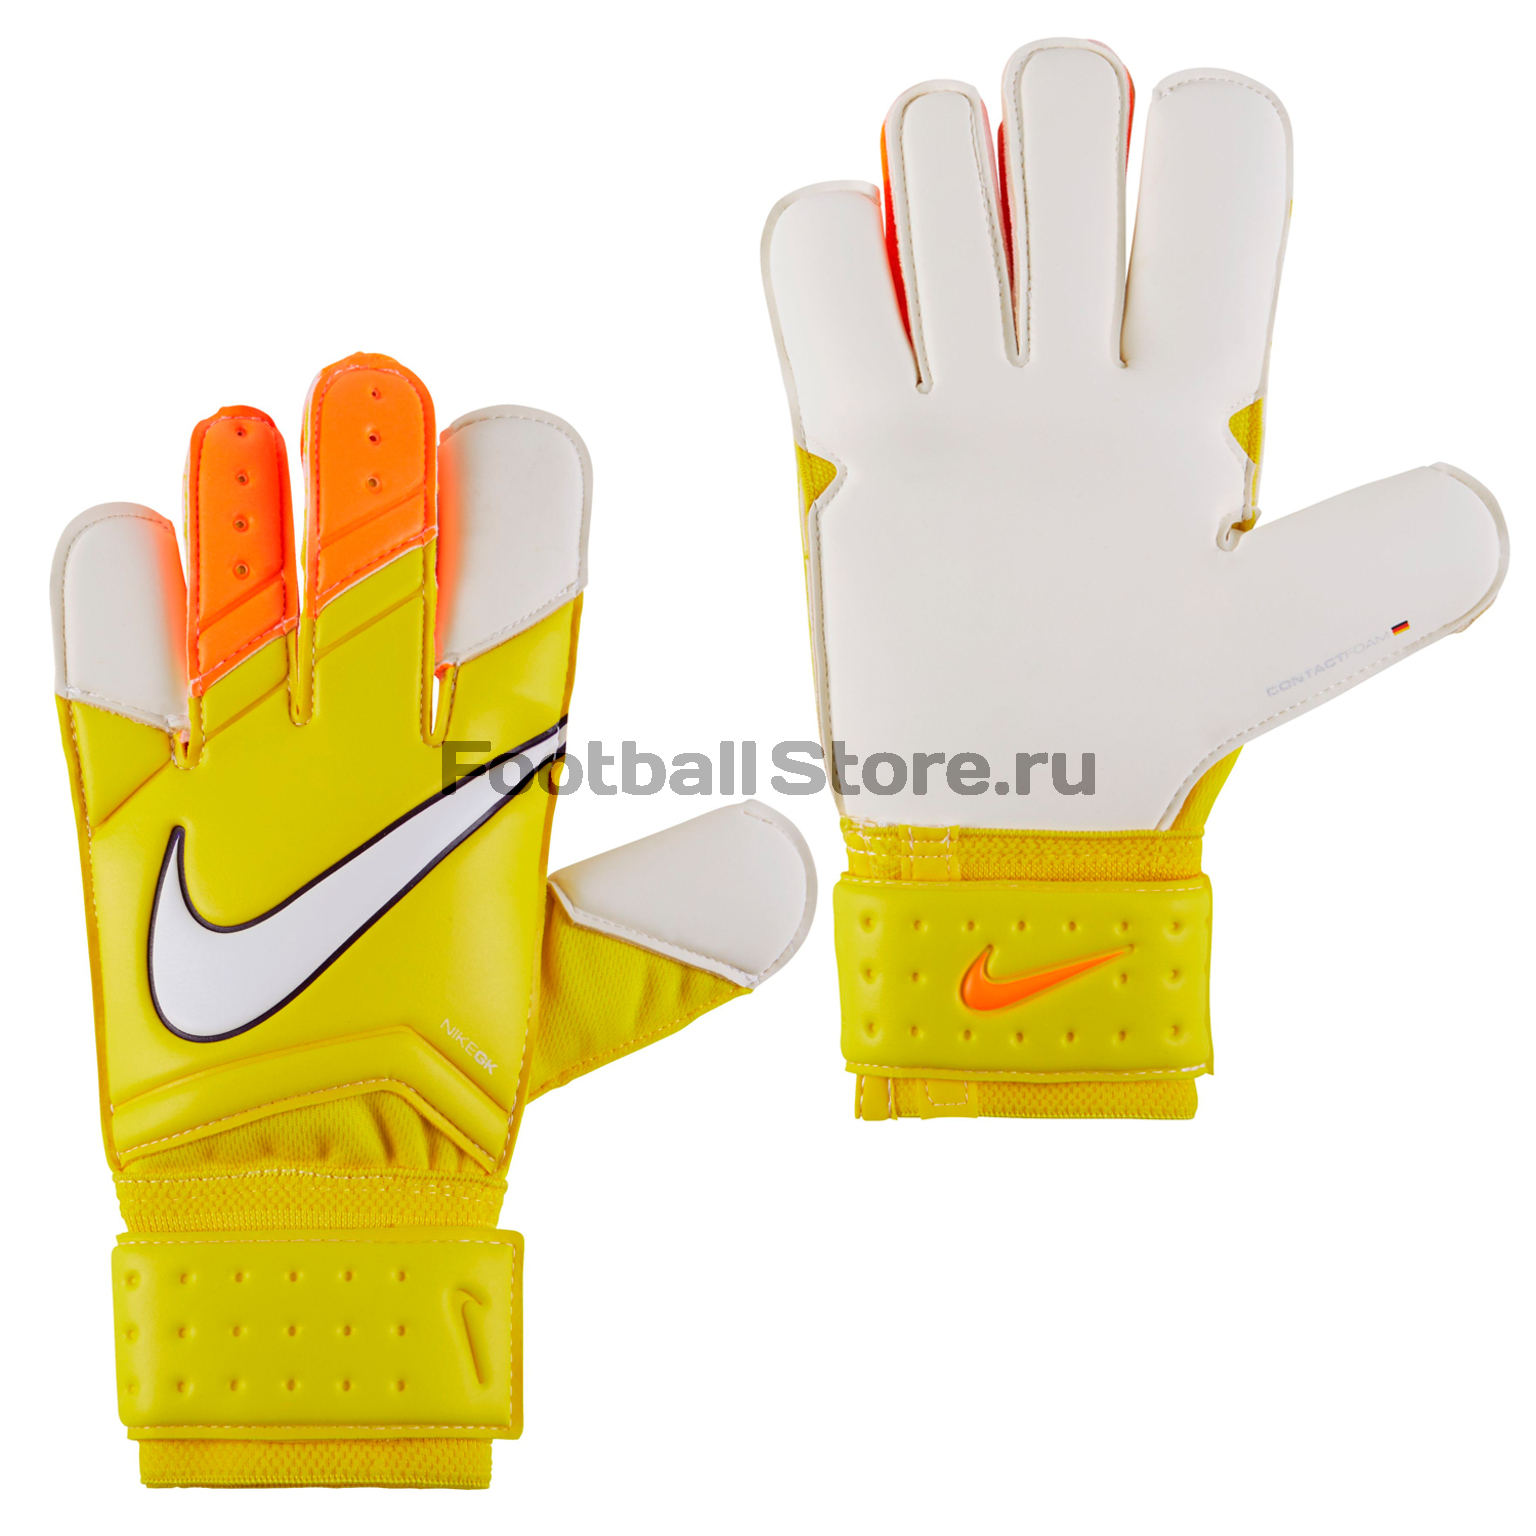 Перчатки Nike Перчатки вратарские Nike GK Vapor GRIP 3 GS0275-790 спортинвентарь nike чехол для iphone 6 на руку nike vapor flash arm band 2 0 n rn 50 078 os